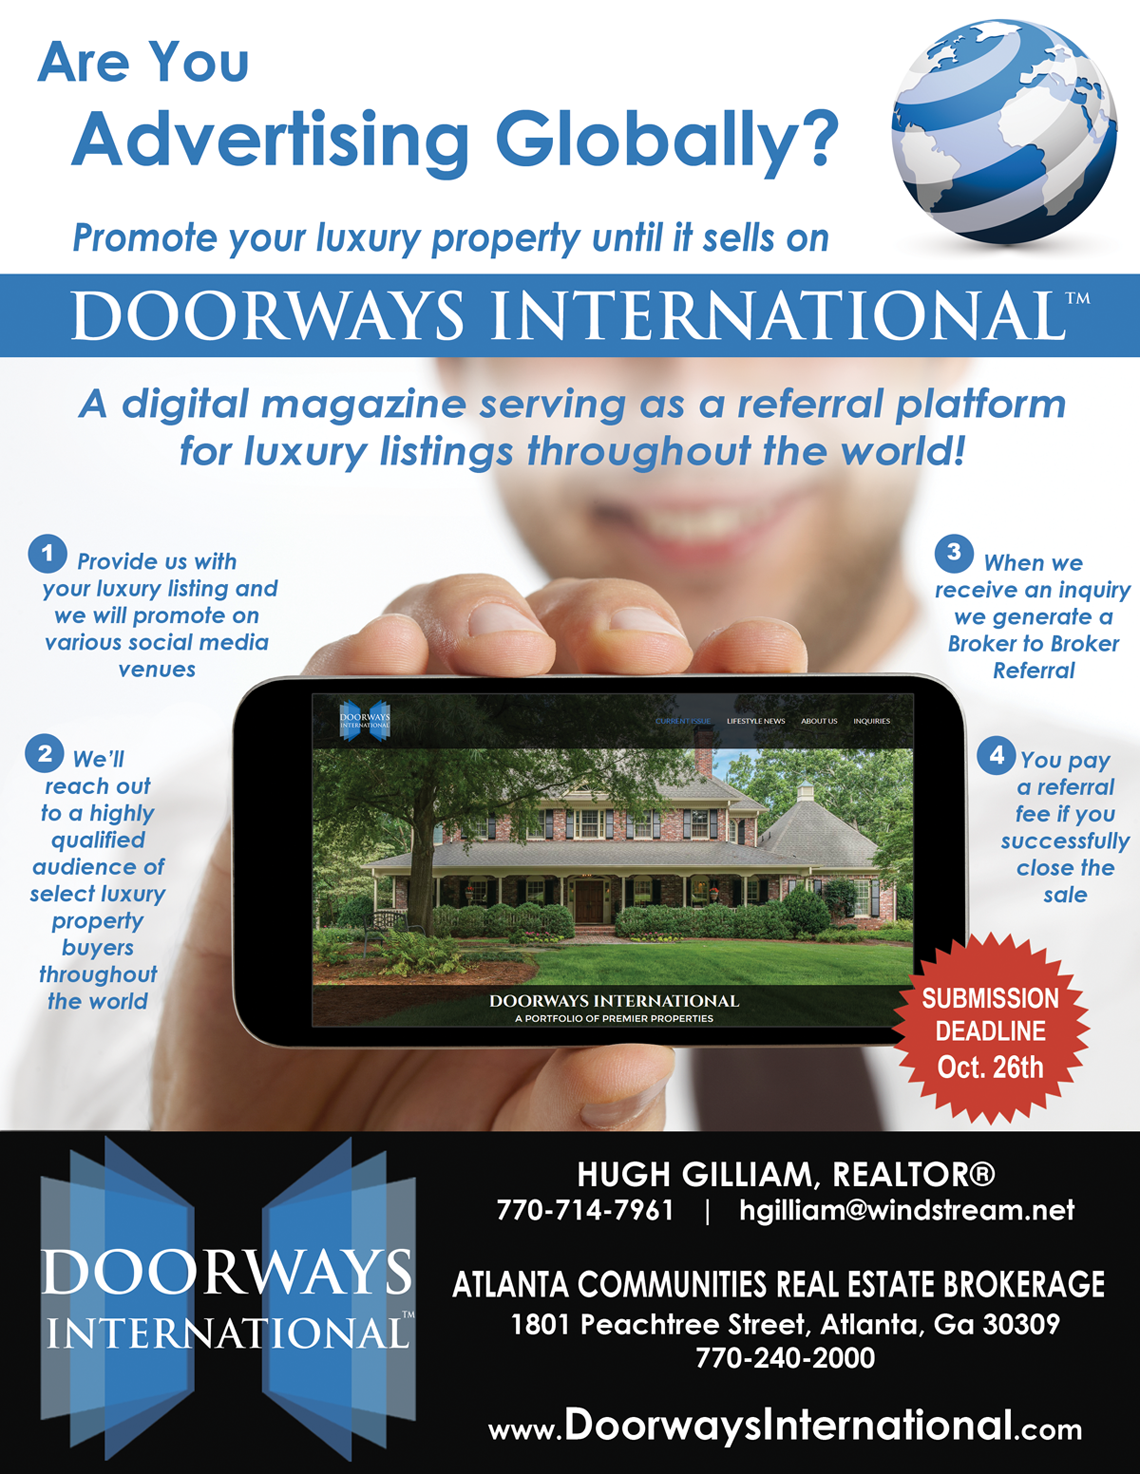 International property magazine - Doorways International Details For Agents To Have Listings Includeda Free Way To Get Your Luxury International Property Listings In Front Of International